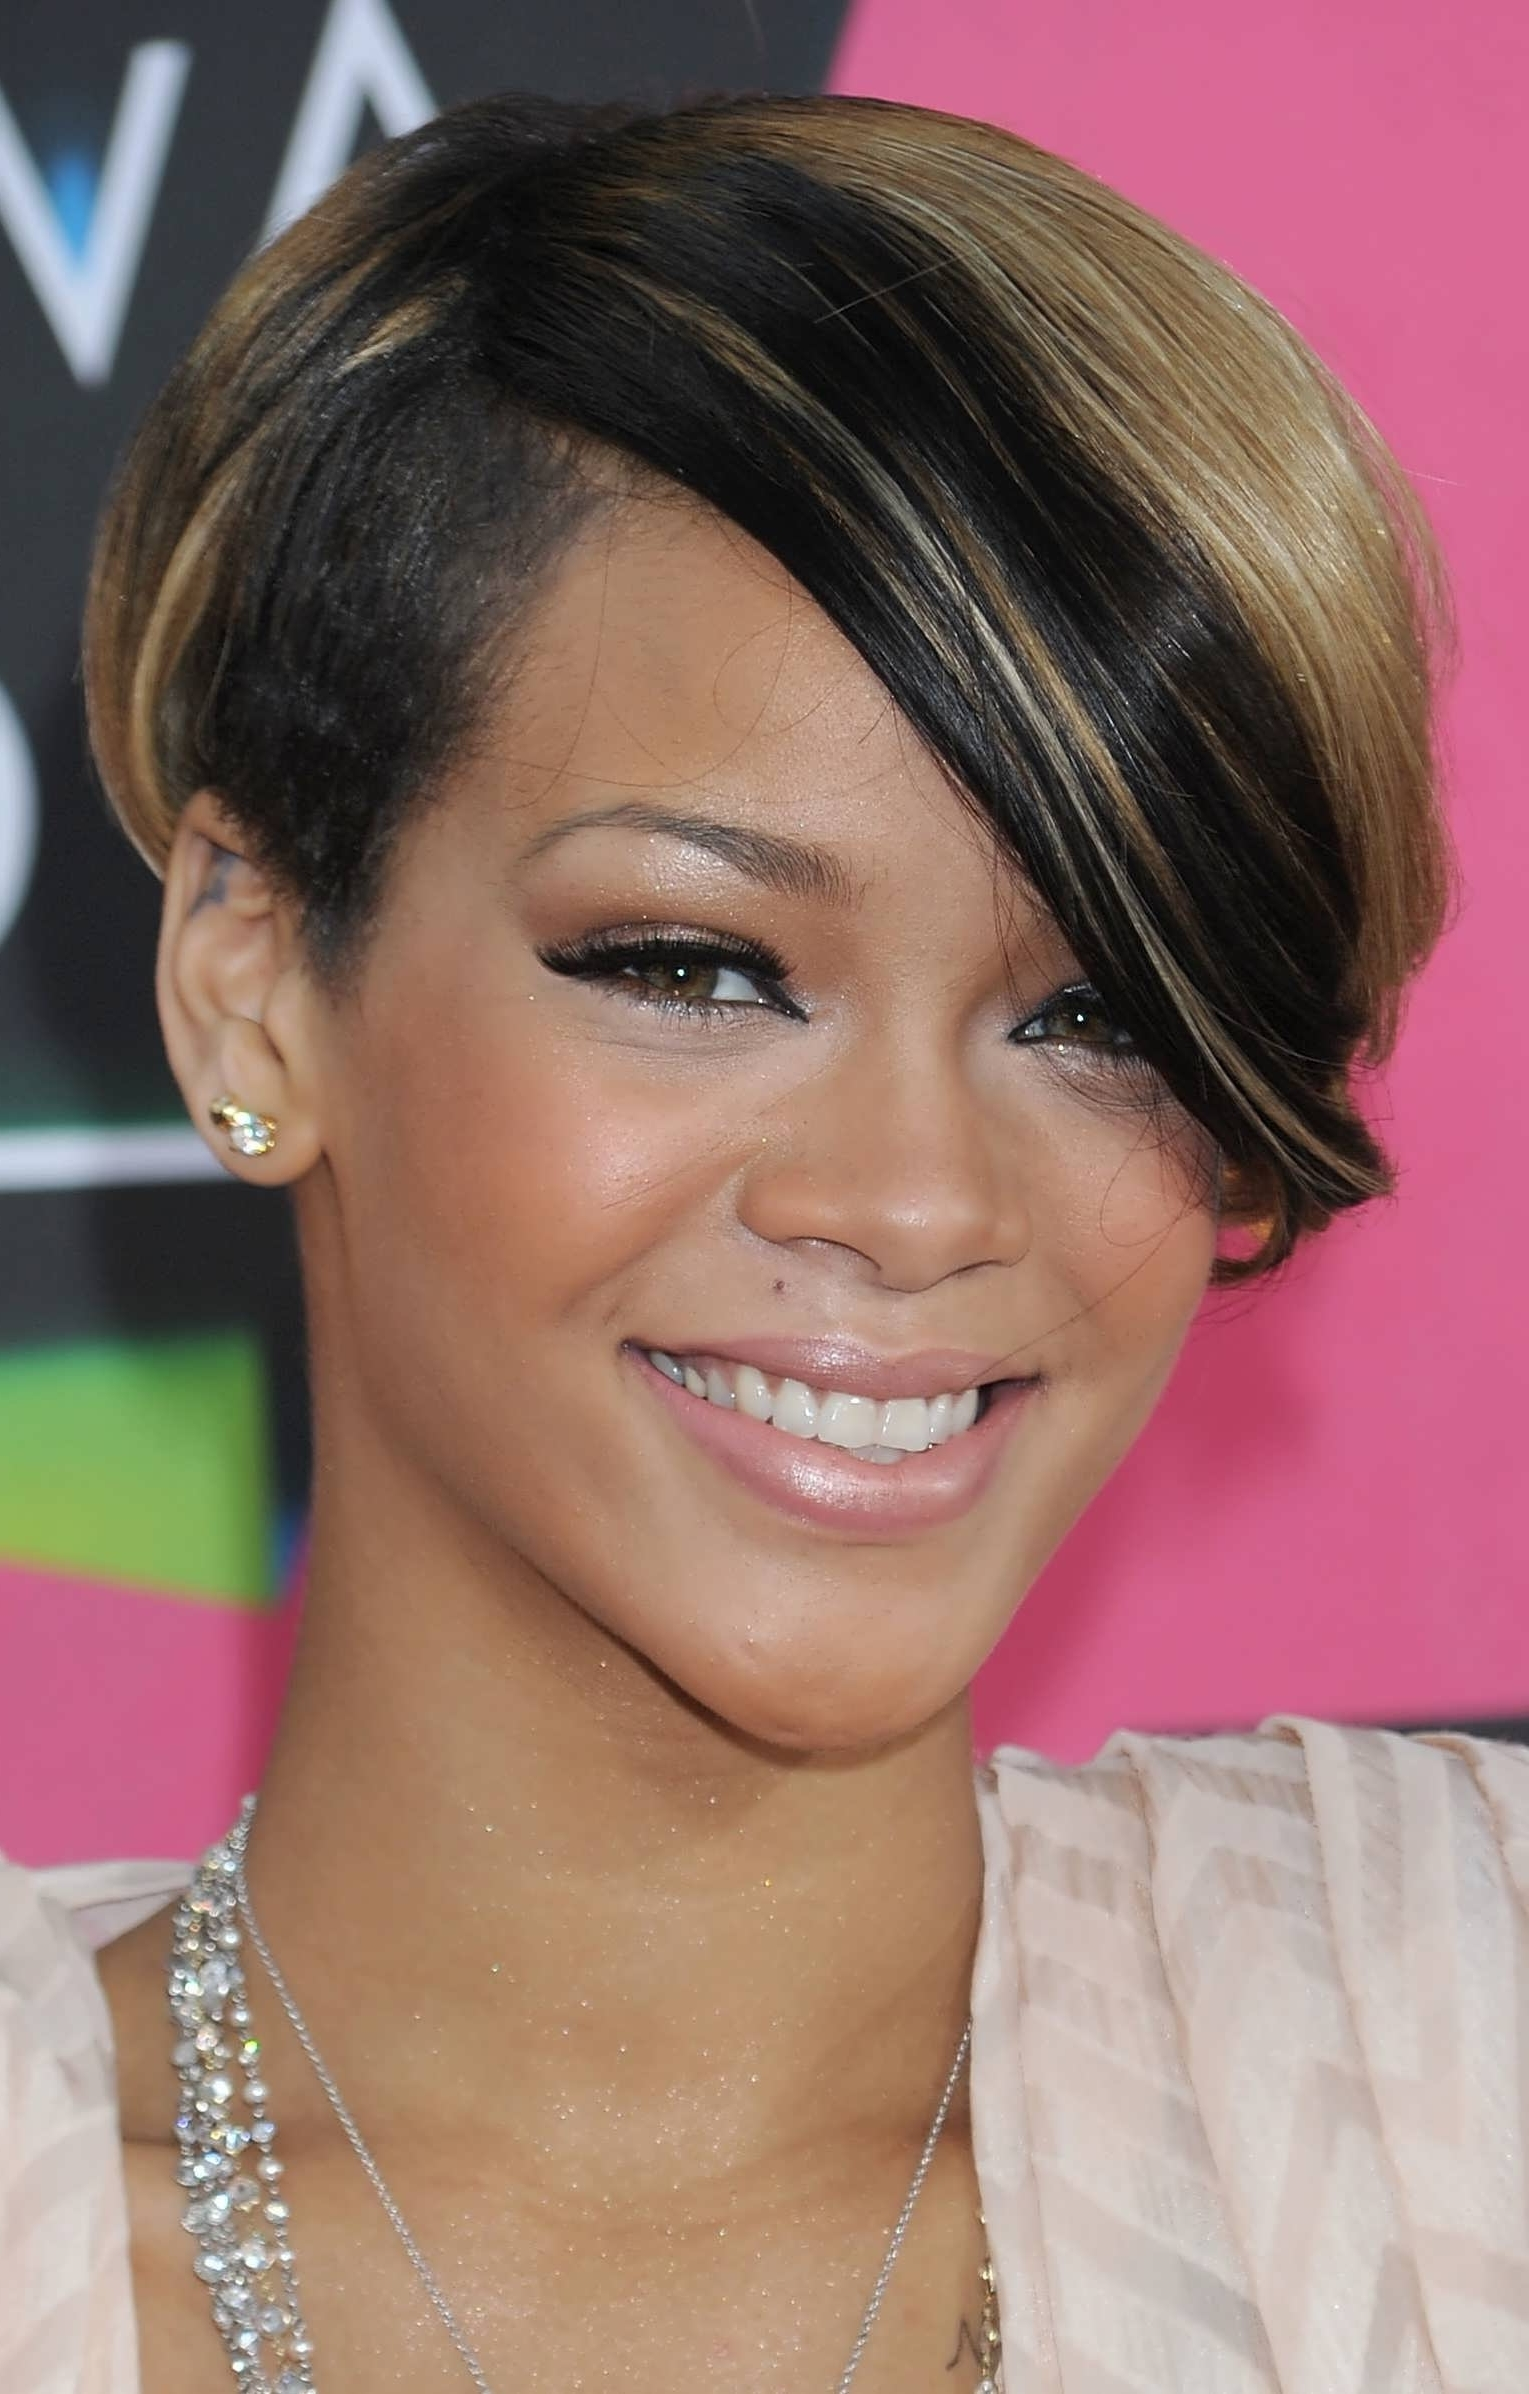 50 African American Short Black Hairstyles / Haircuts For Women Regarding Most Recently Pixie Hairstyles For Round Face Shape (View 15 of 15)